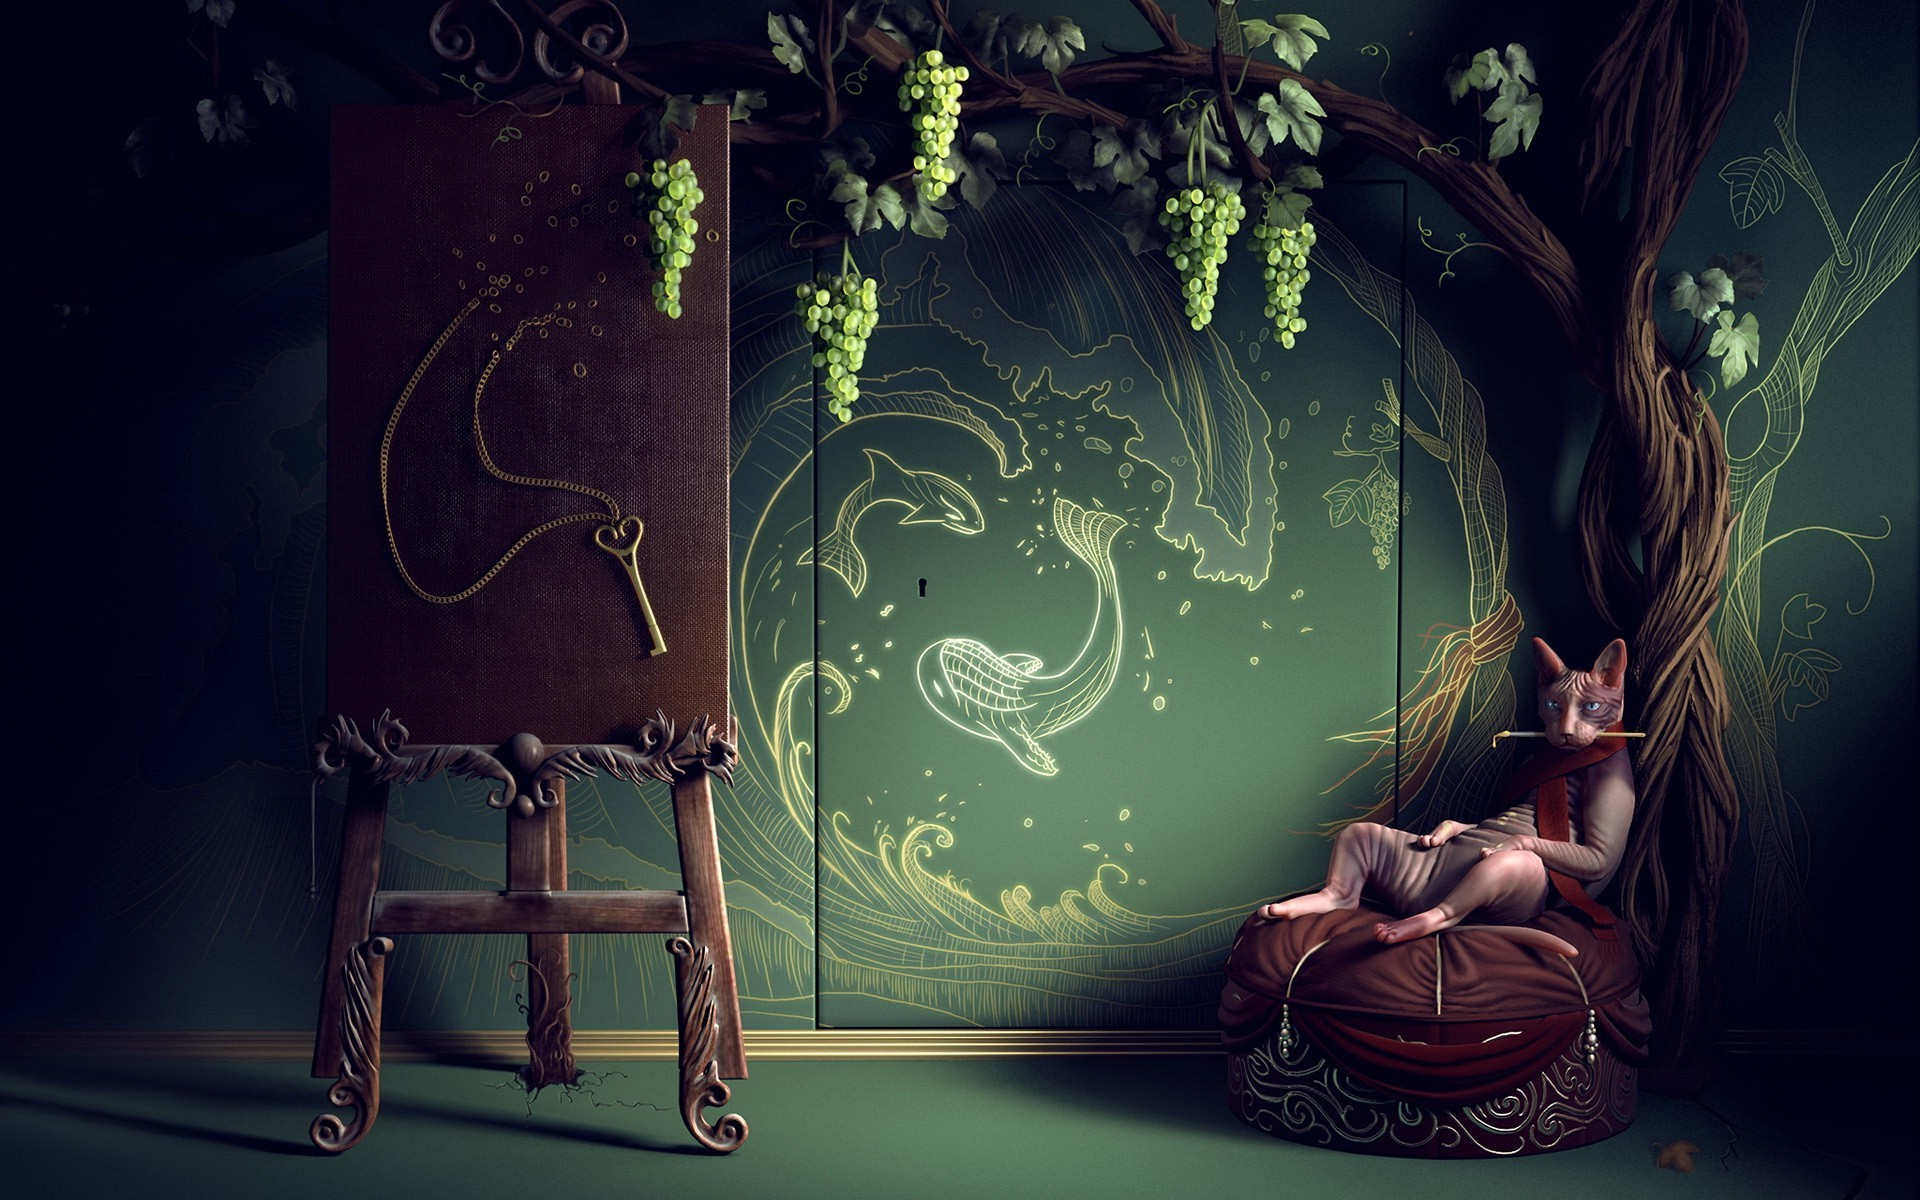 Bohemian Wallpaper Art - WallpaperSafari